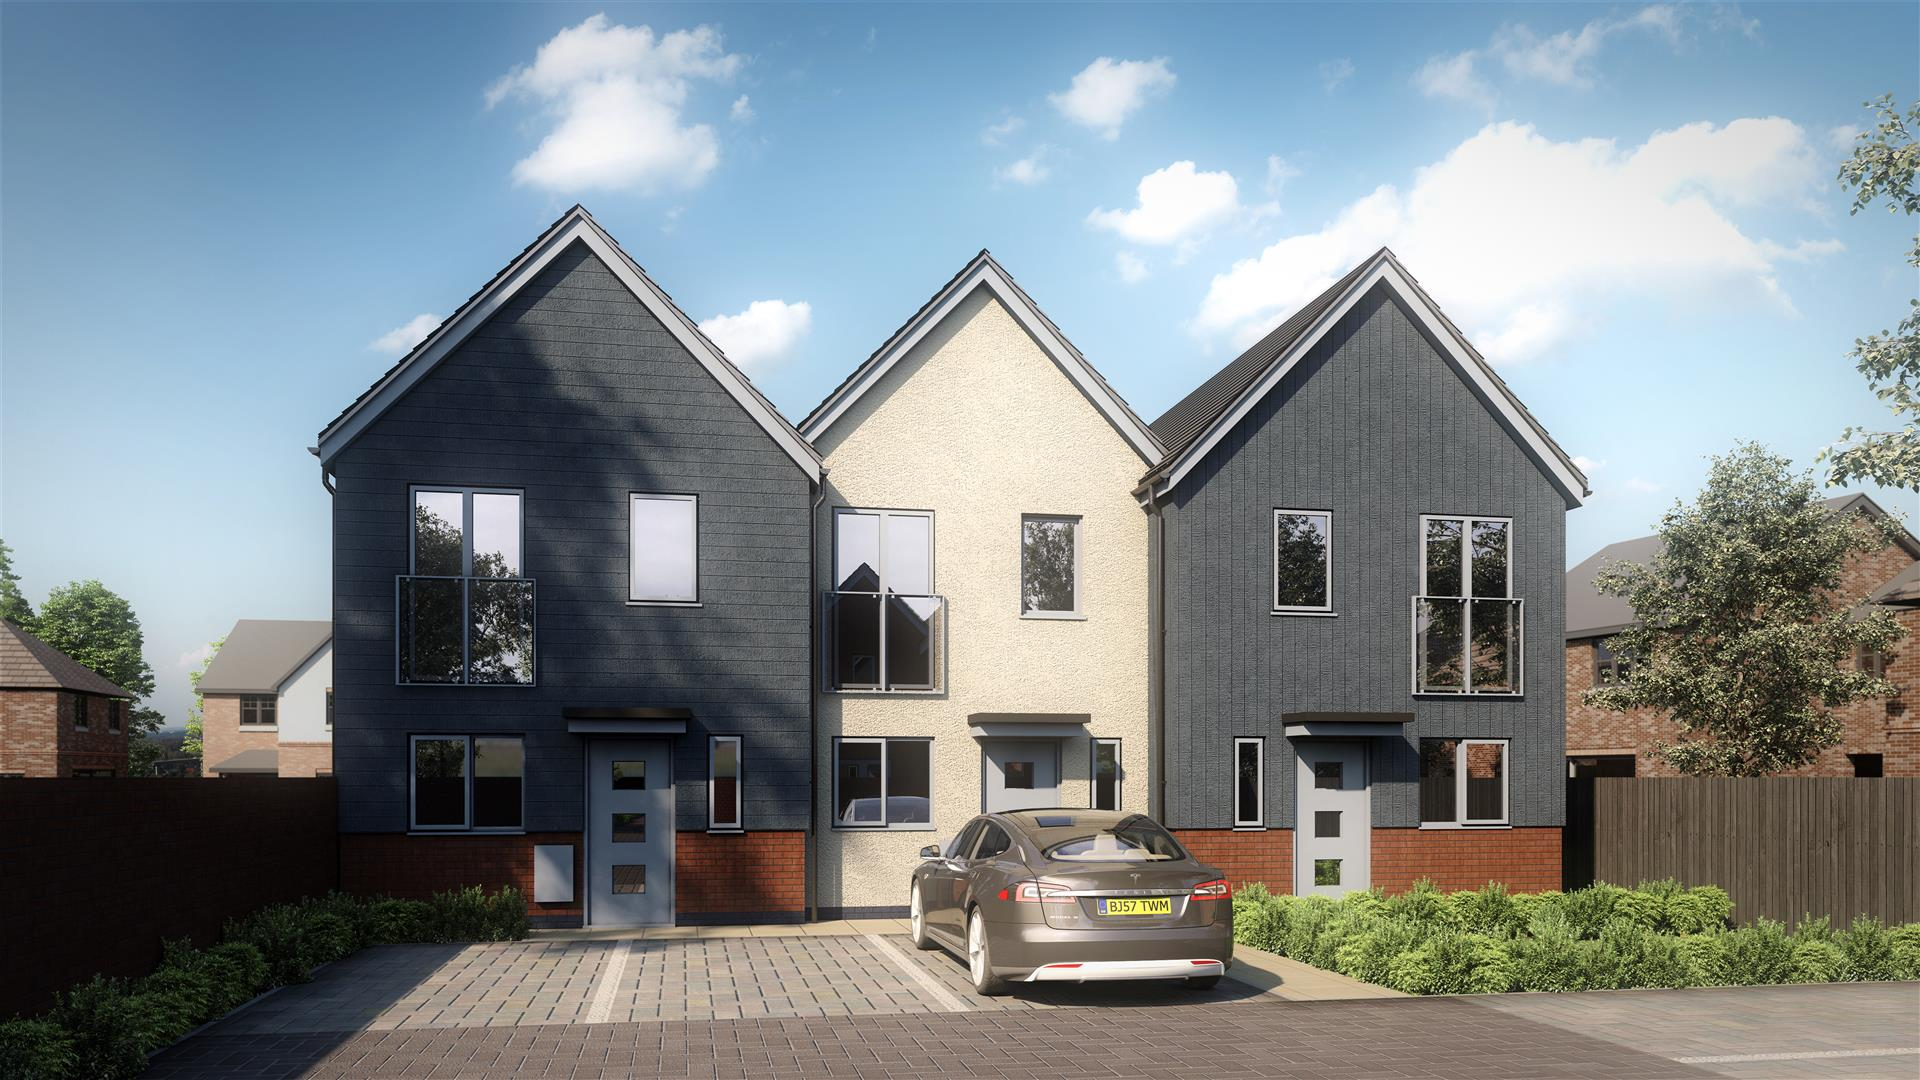 2 bed house for sale in Ridgemere Close, Yardley, Birmingham 2